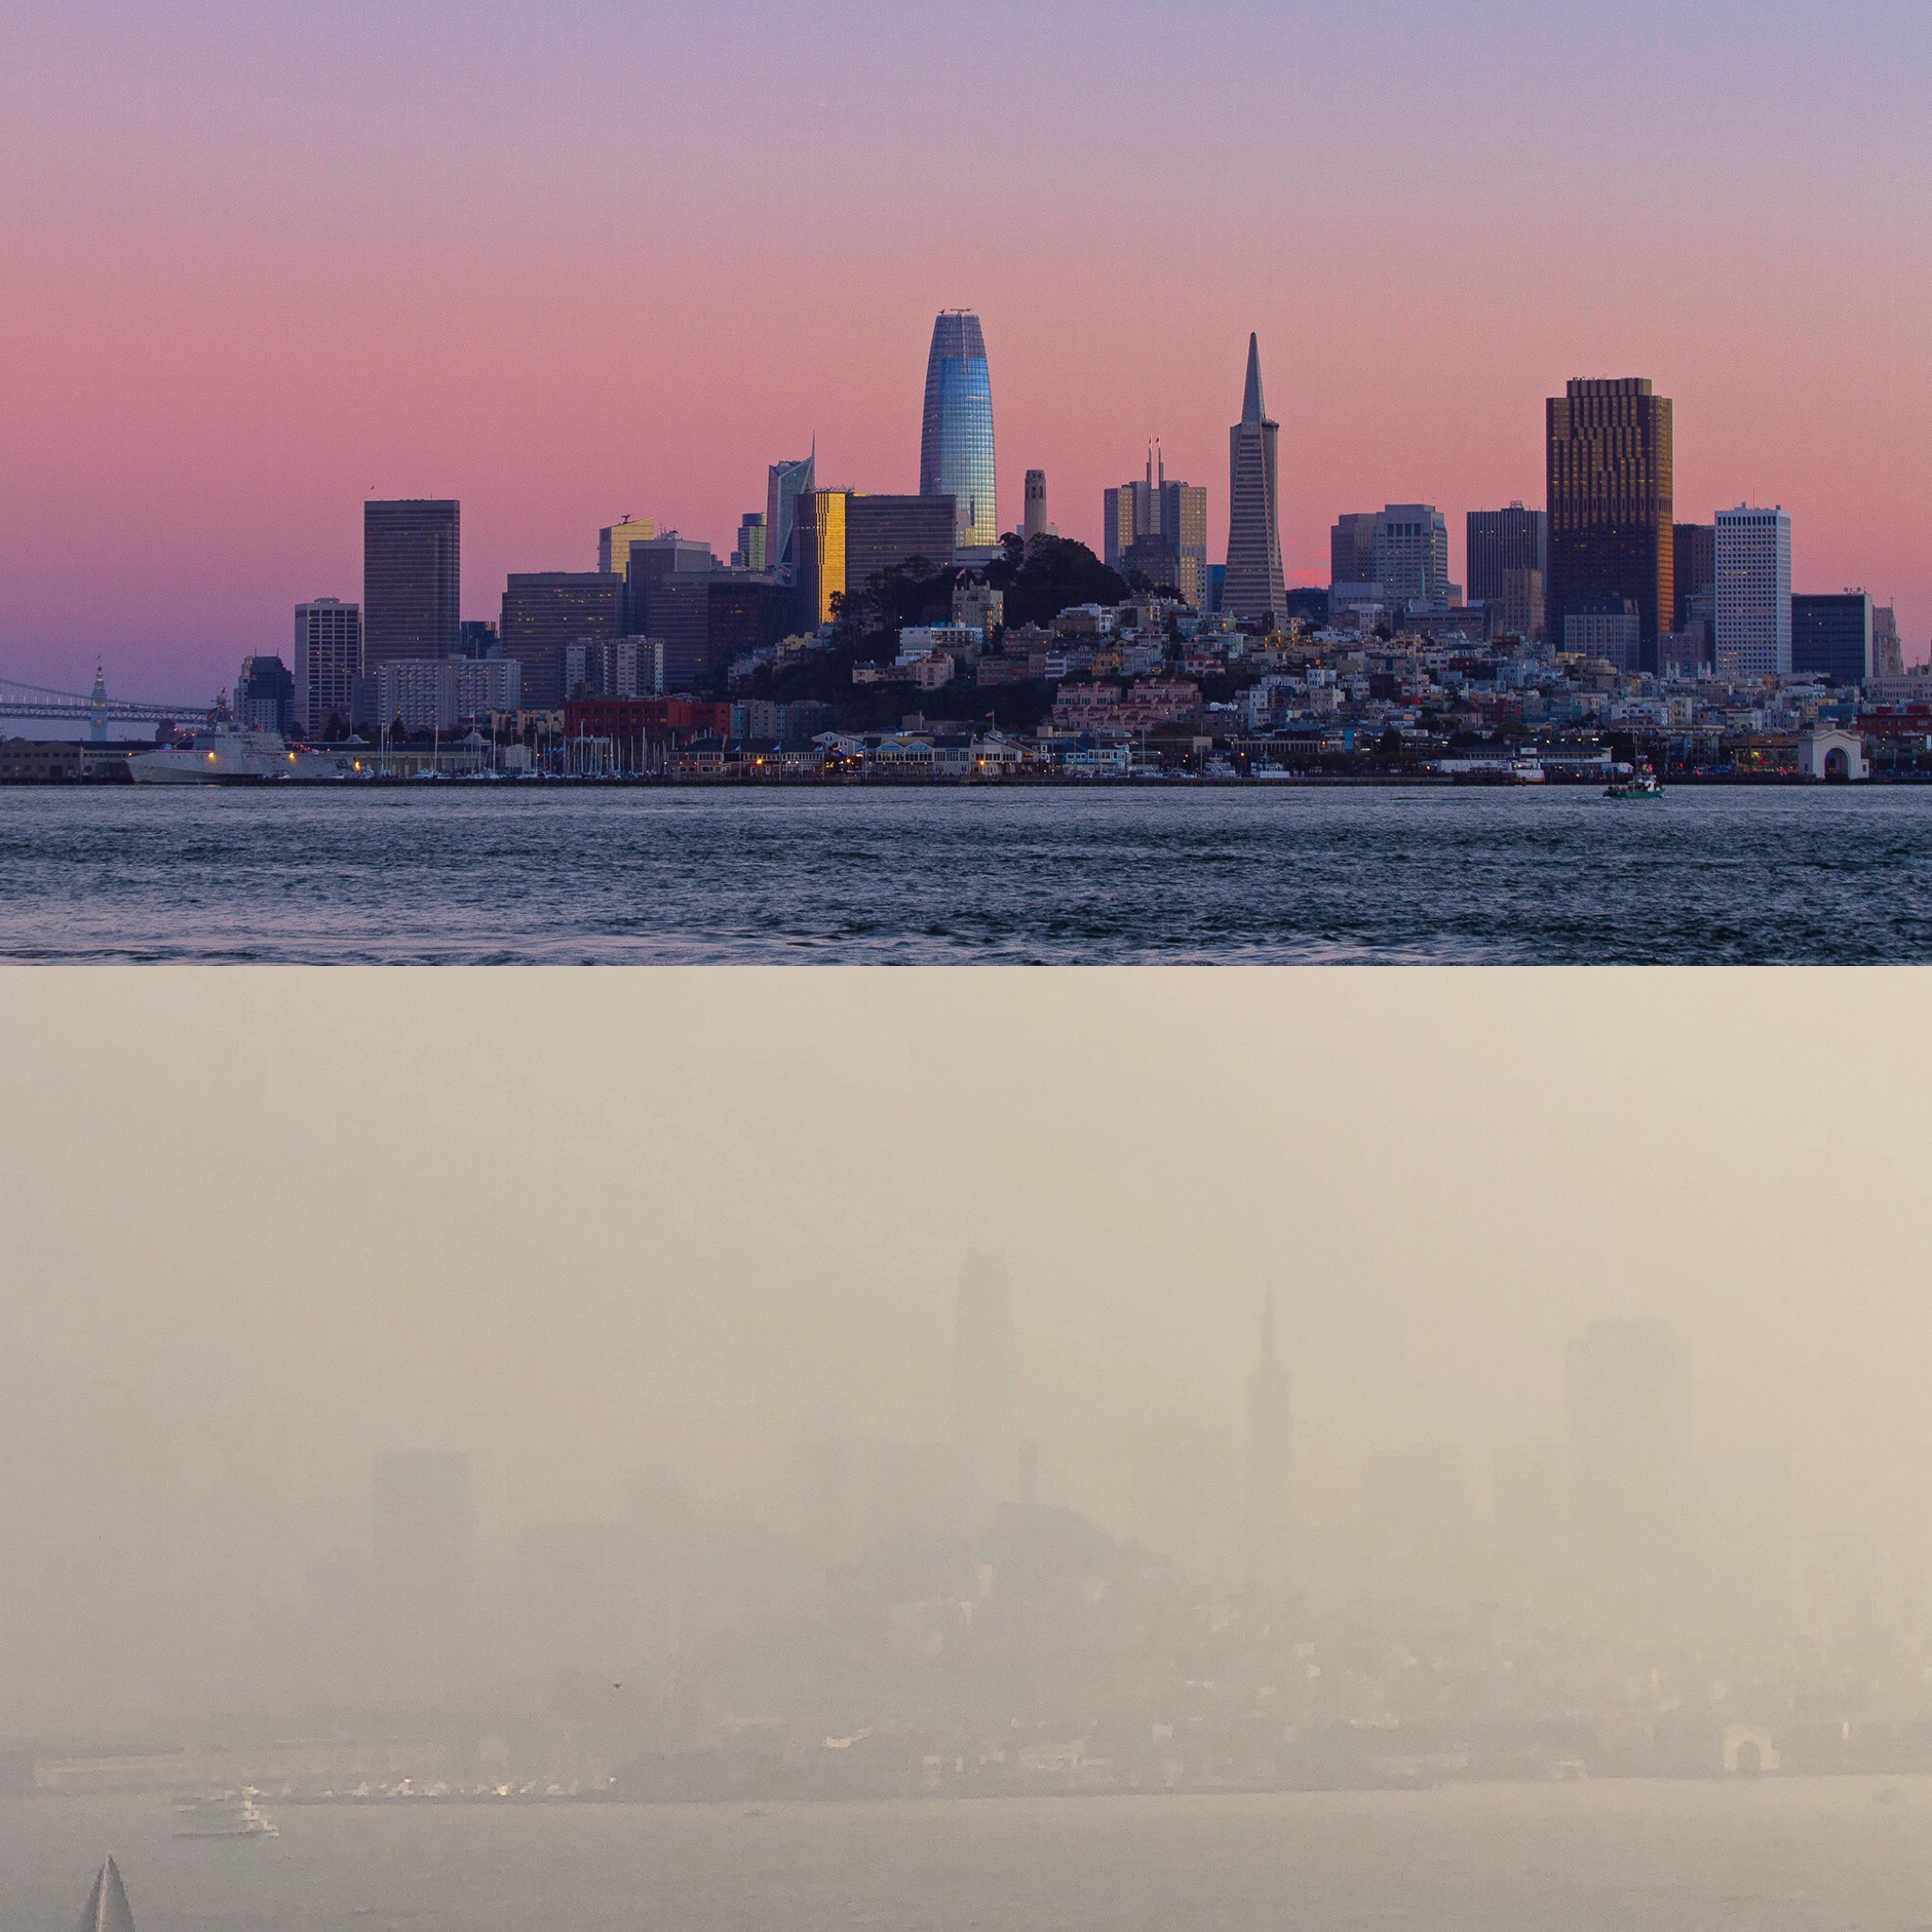 Marc Stokes, who works on Alcatraz in San Francisco, posted side-by-side photos of the view from the island on from the week of Oct. 28 and Nov. 10, two days after a fire started in Butte County, Calif.